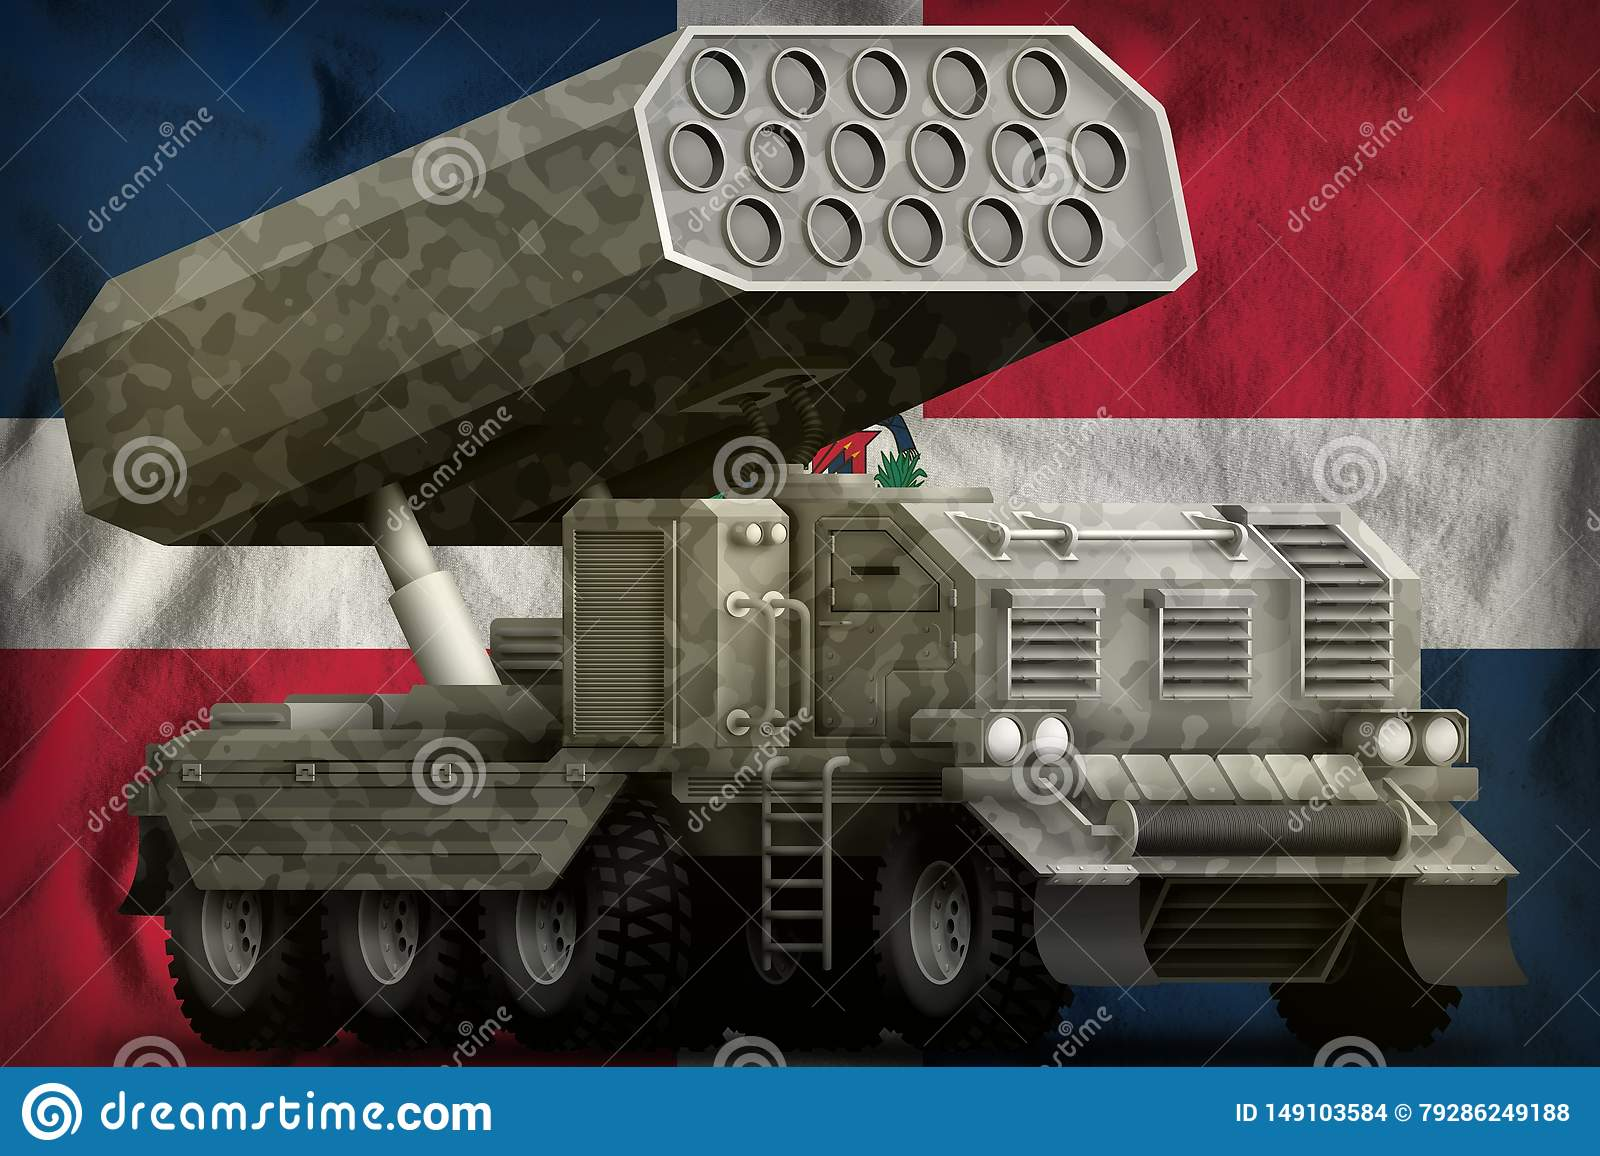 Rocket artillery, missile launcher with grey camouflage on the Dominican Republic national flag background. 3d Illustration